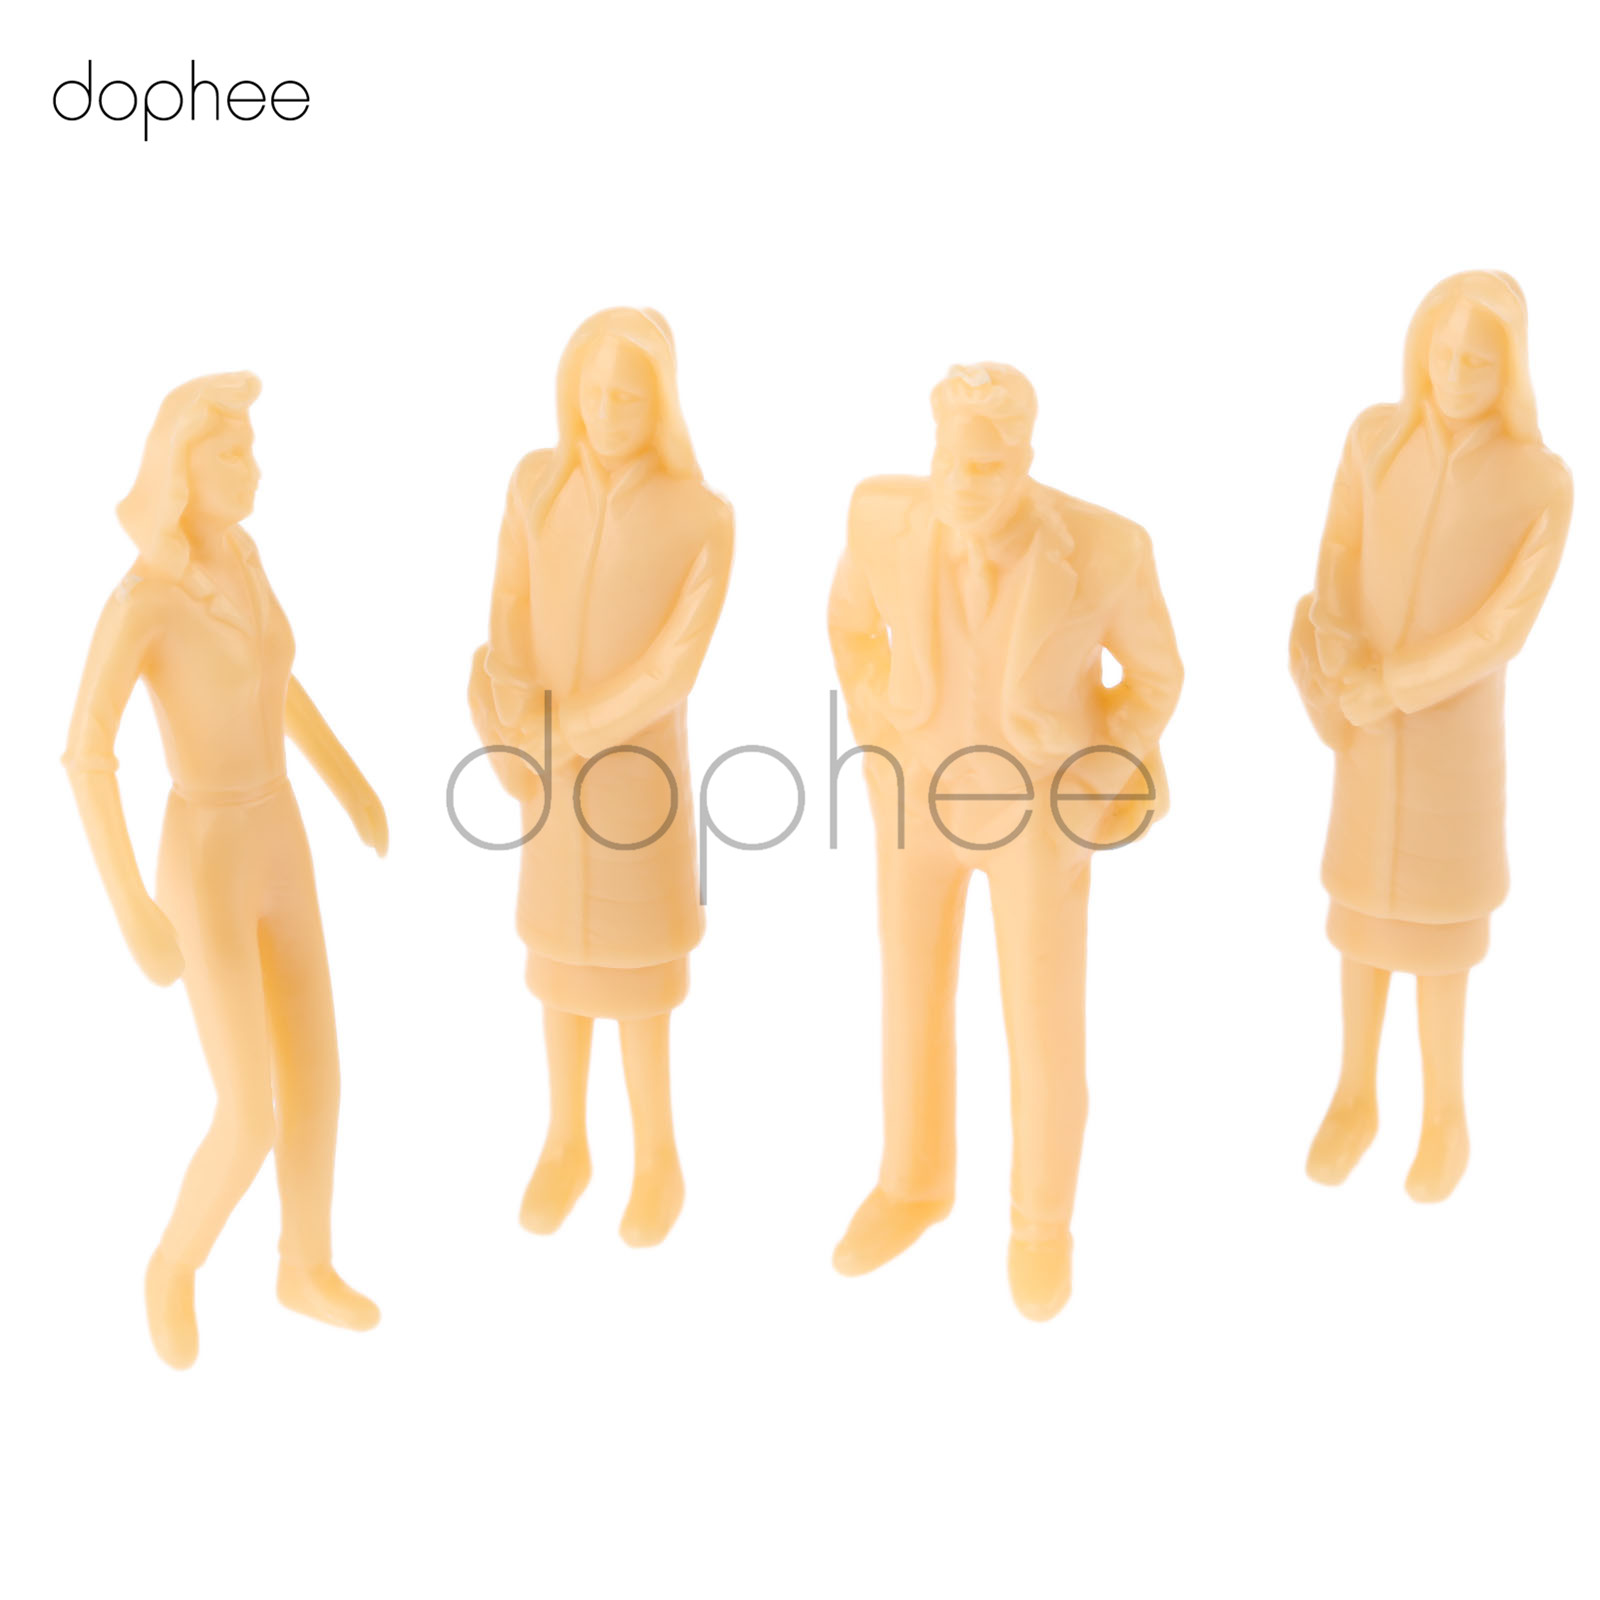 dophee 20pcs miniature Skin color Model People figures Architectural scale HO 1:30 1:42 1:50 ABS plastic peoples 65mm 40mm 36mm